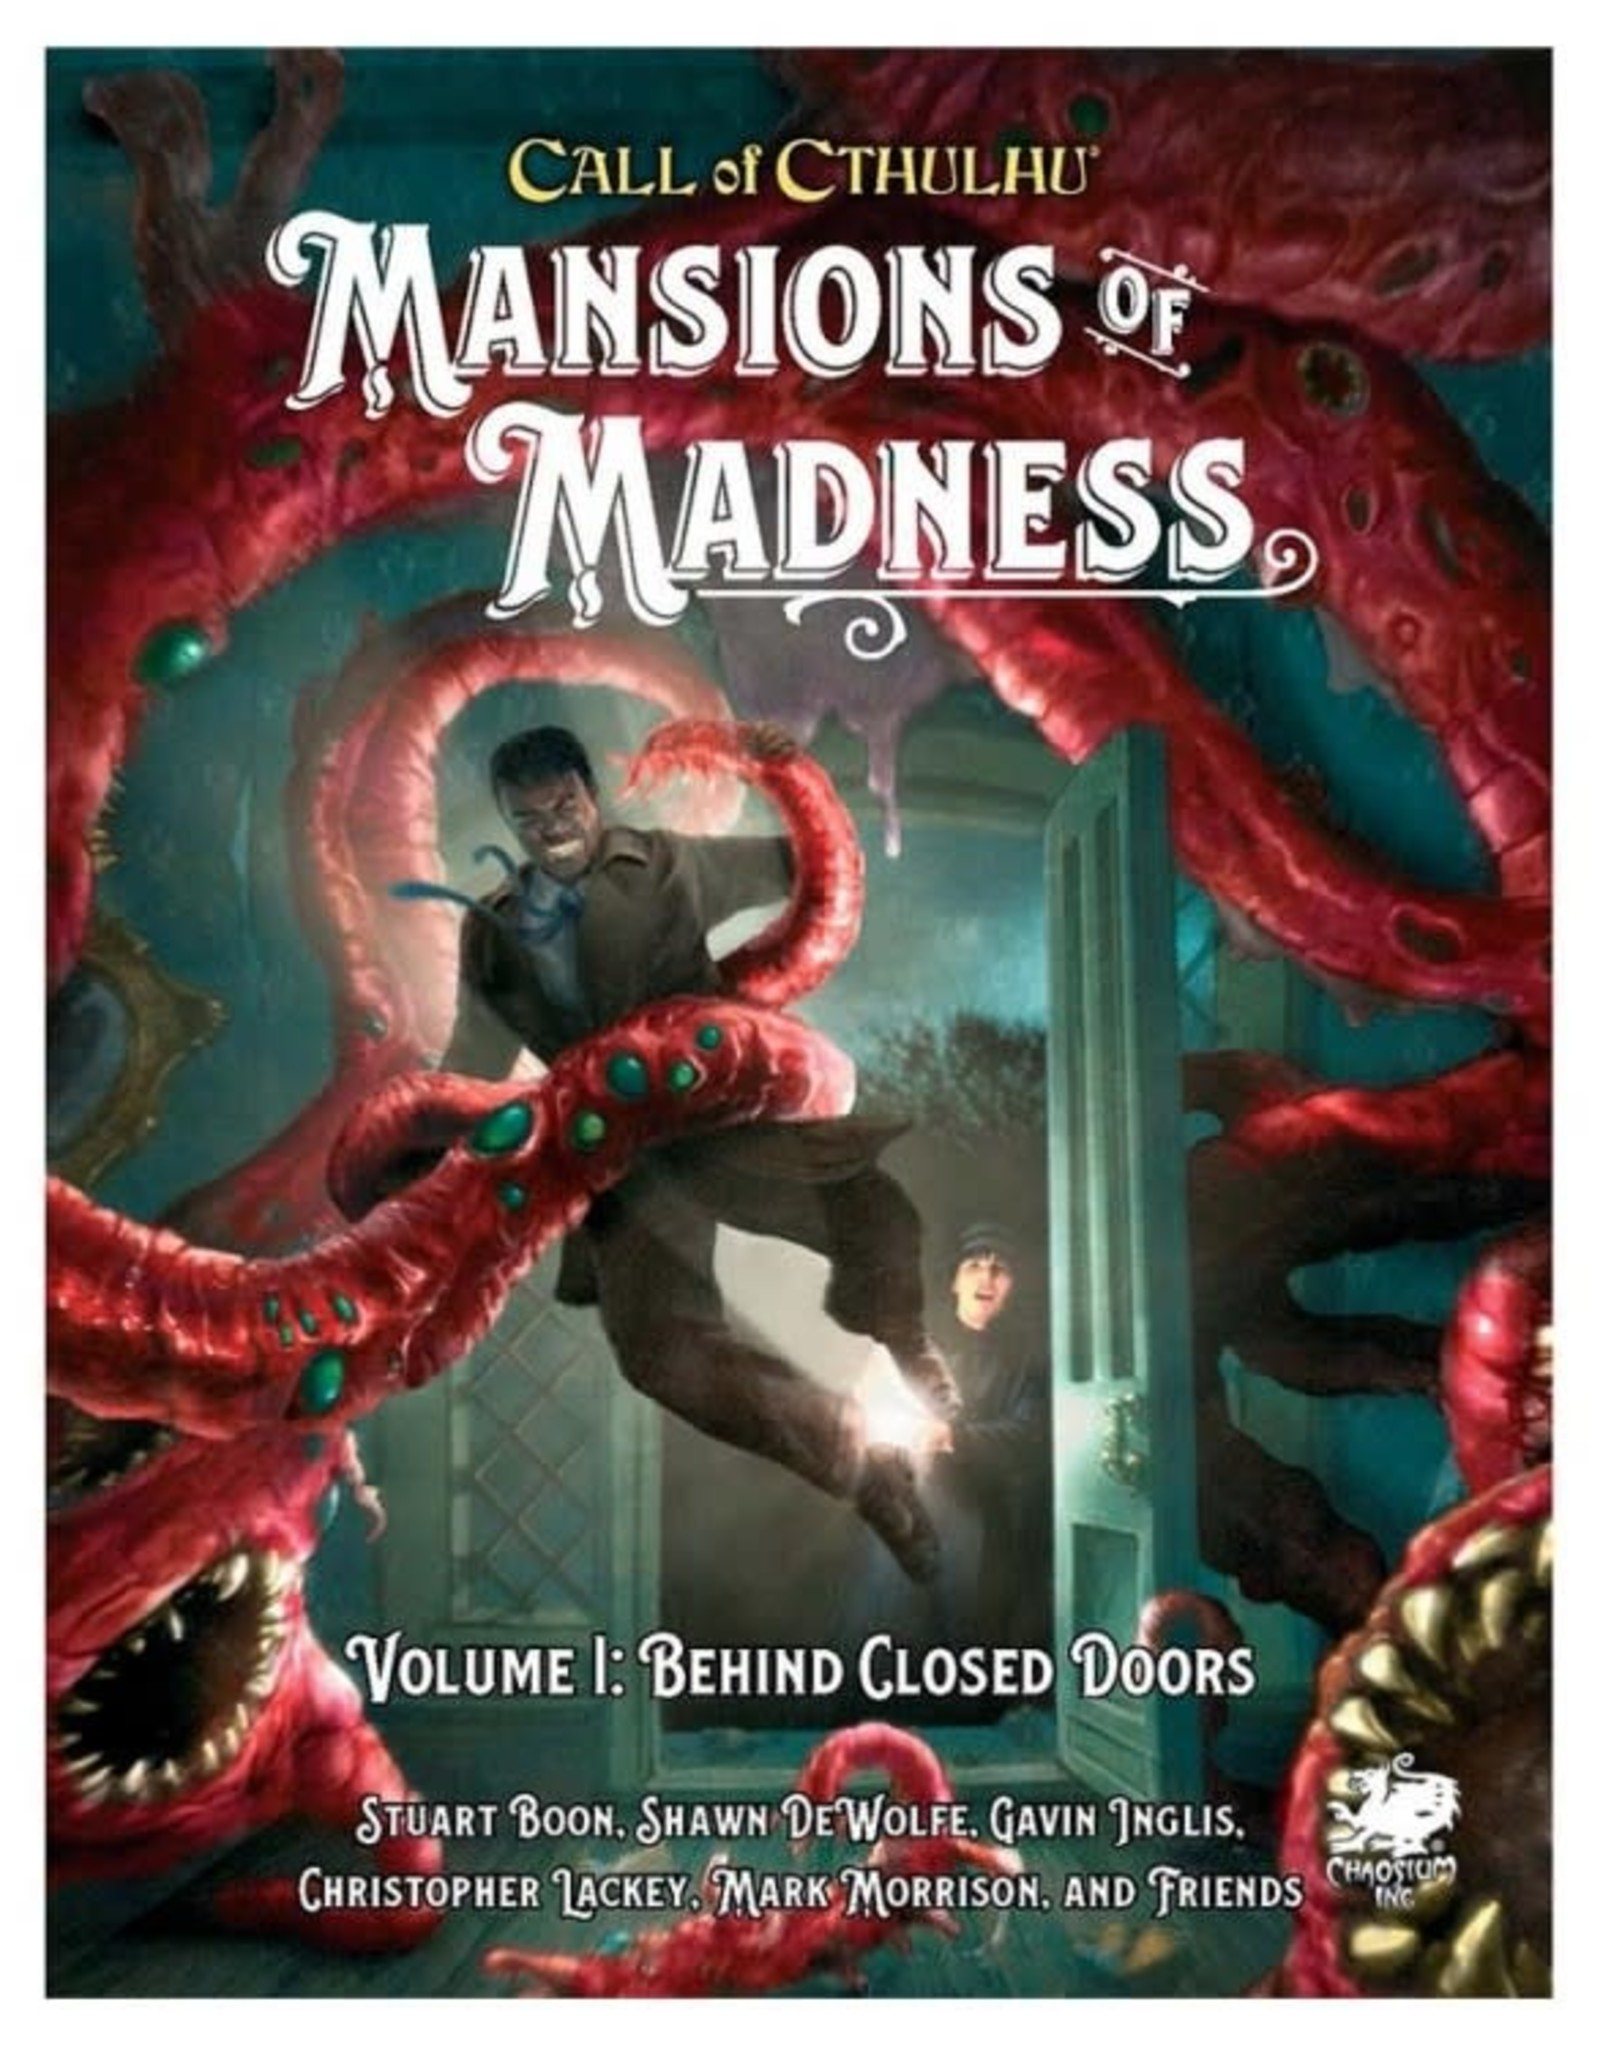 Chaosium Call of Cthulhu: Mansions of Madness Vol. 1 Behind Closed Doors